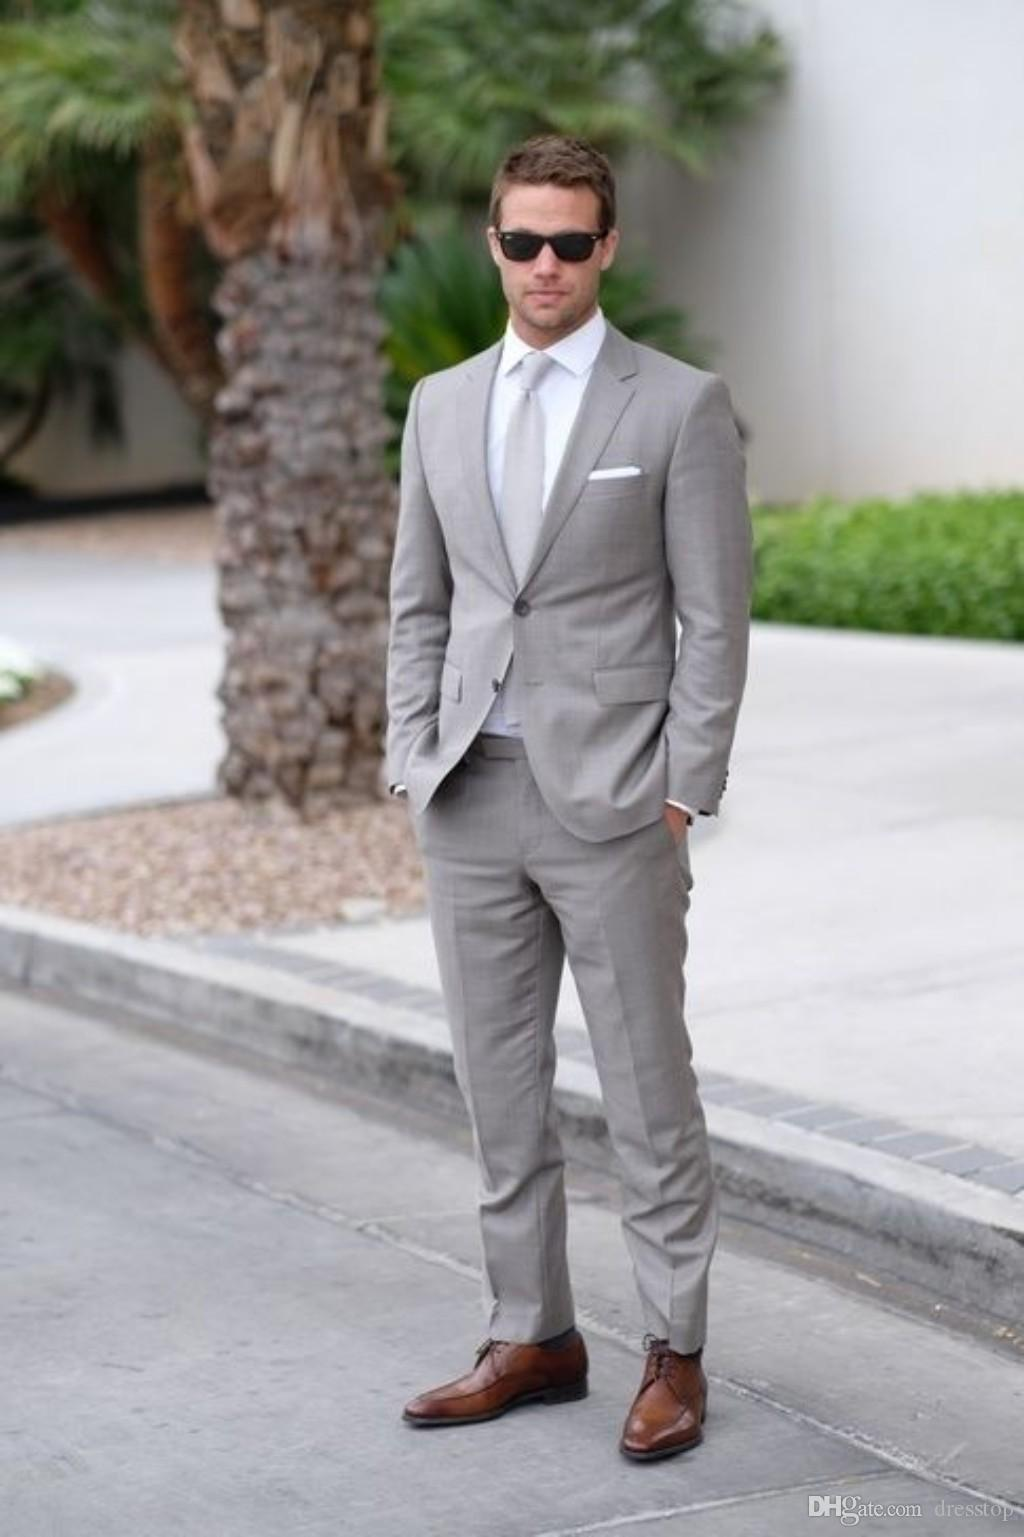 sale usa online real quality search for official Light Gray Wedding Mens Suits Slim Fit Bridegroom Tuxedos Men Two Pieces  Groomsmen Suit Cheap Formal Business Jackets With Tie Tux Shirt Styles ...